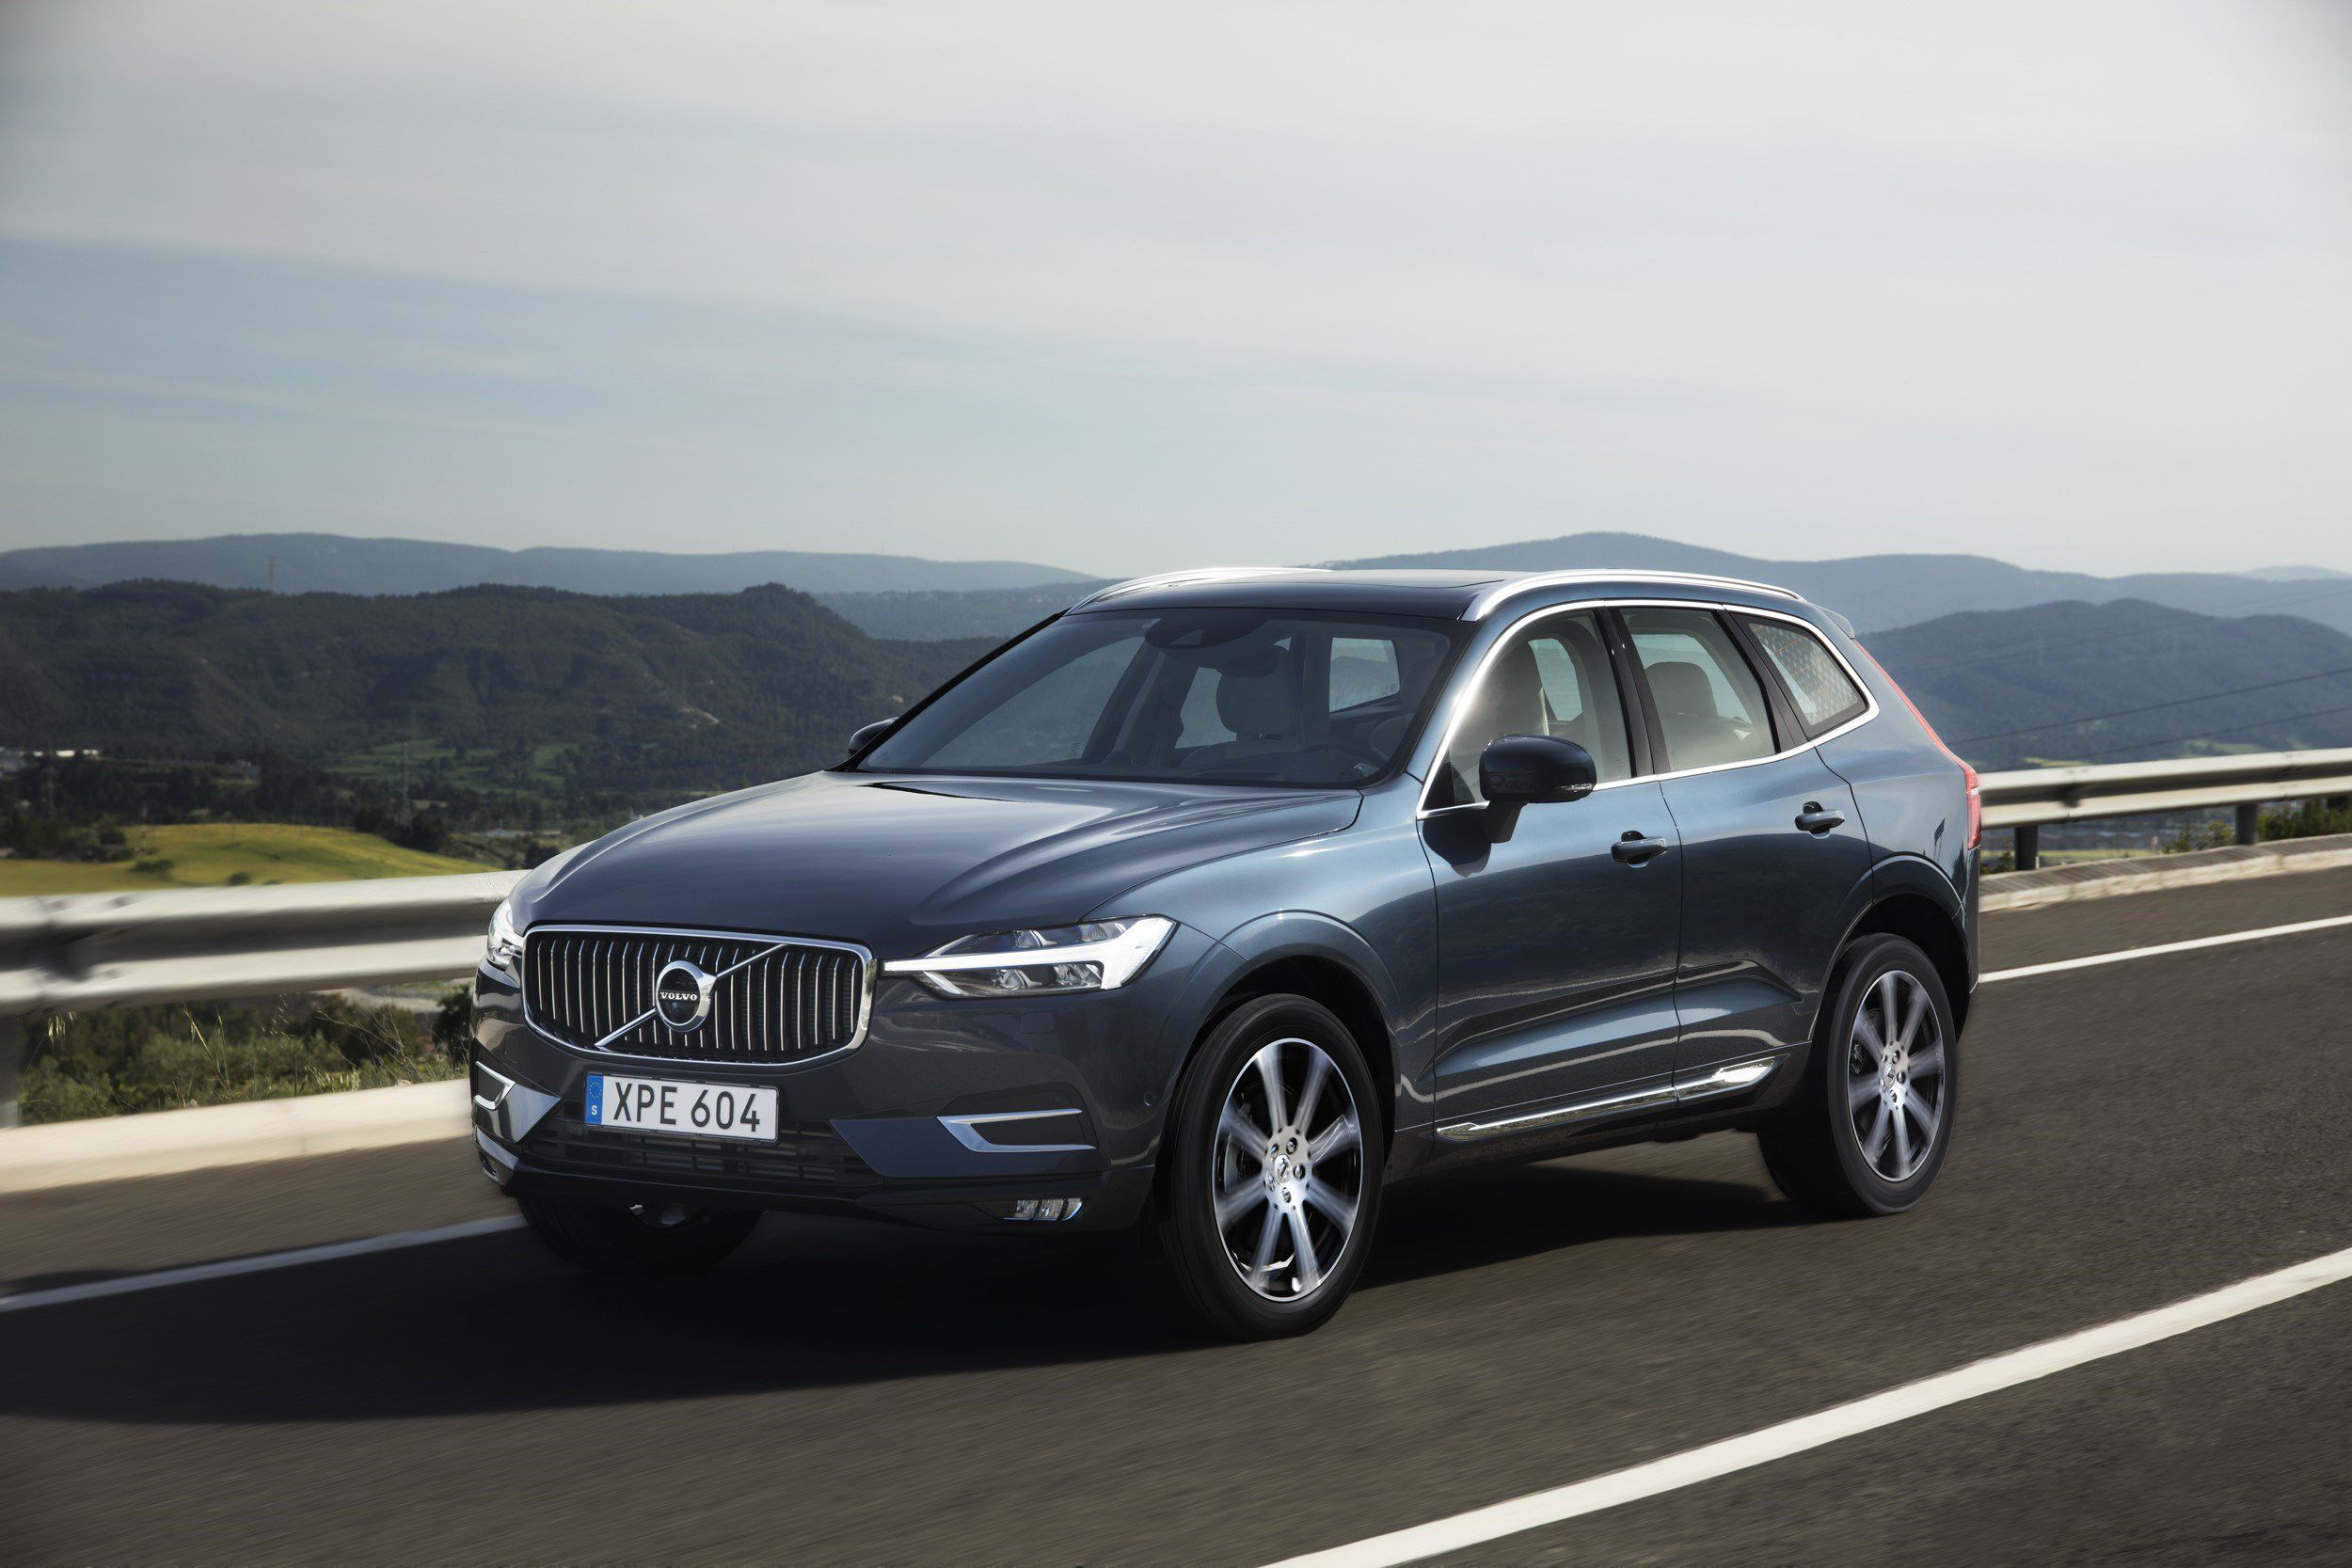 Volvo Xc60 The New Volvo Xc60 One Of The Safest Cars Ever Made Is Fully Loaded With New Technology Steer Assist Has Been A Volvo Xc60 Volvo Suv